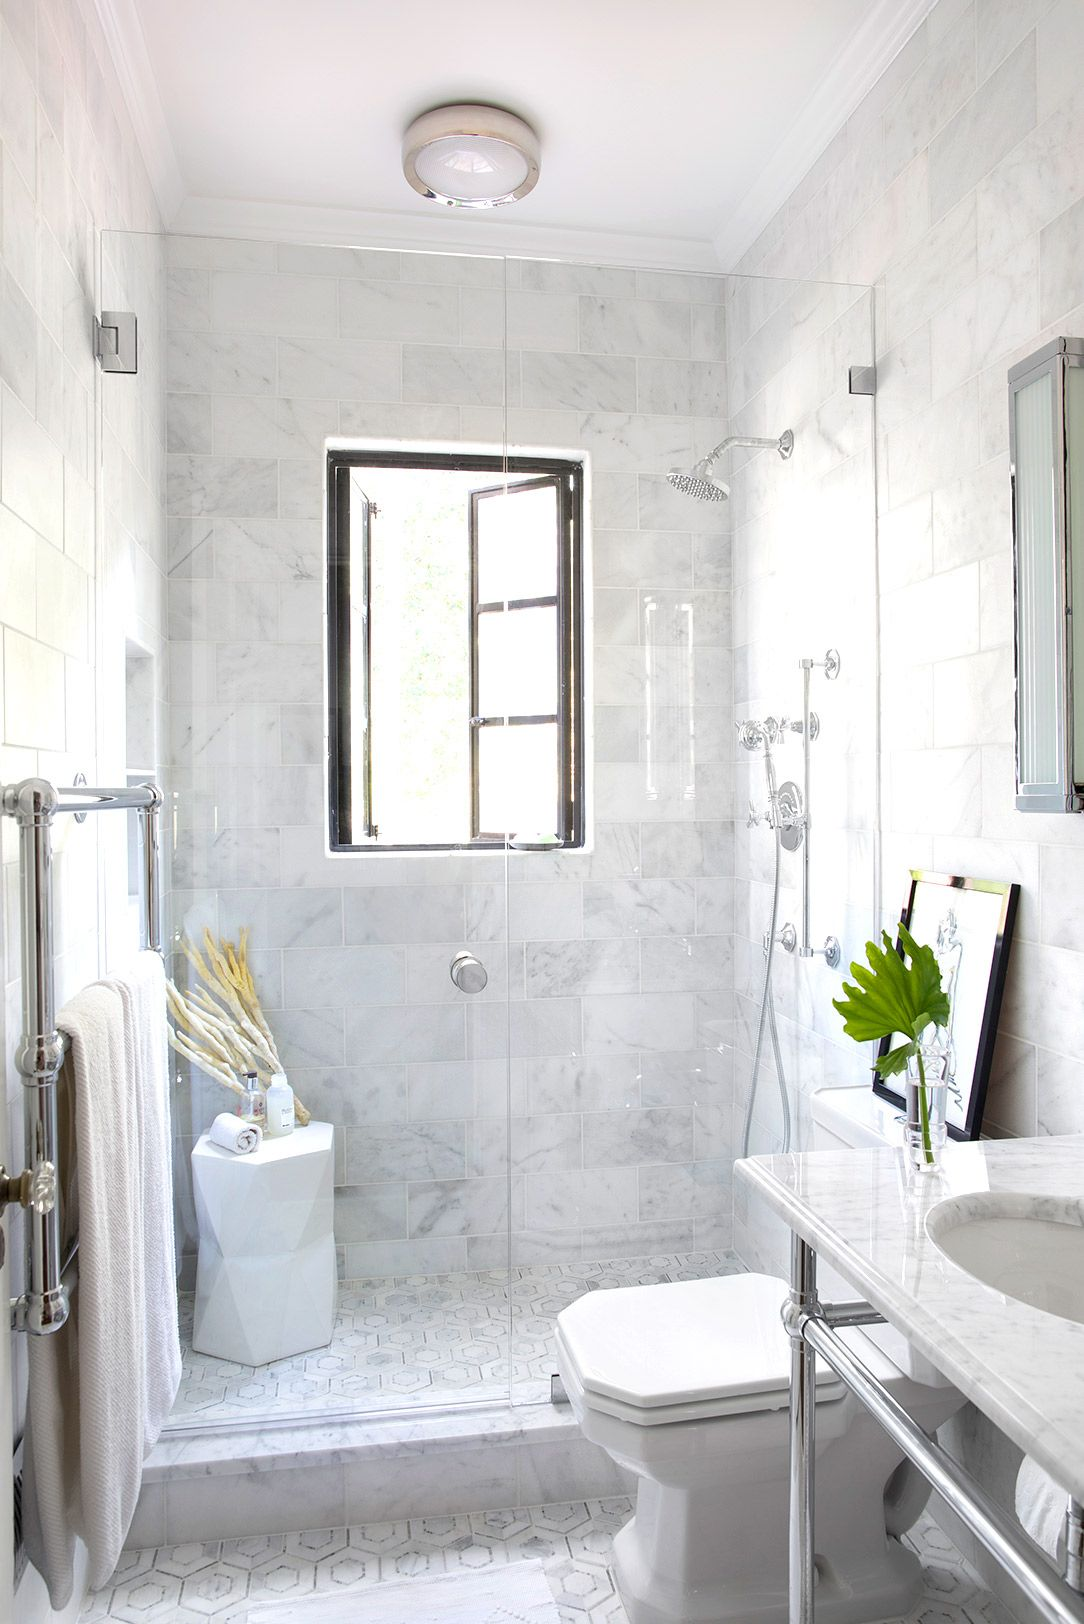 French Bathroom Tiles Home Tour A Designers Pattern Packed Atlanta Home Toilets